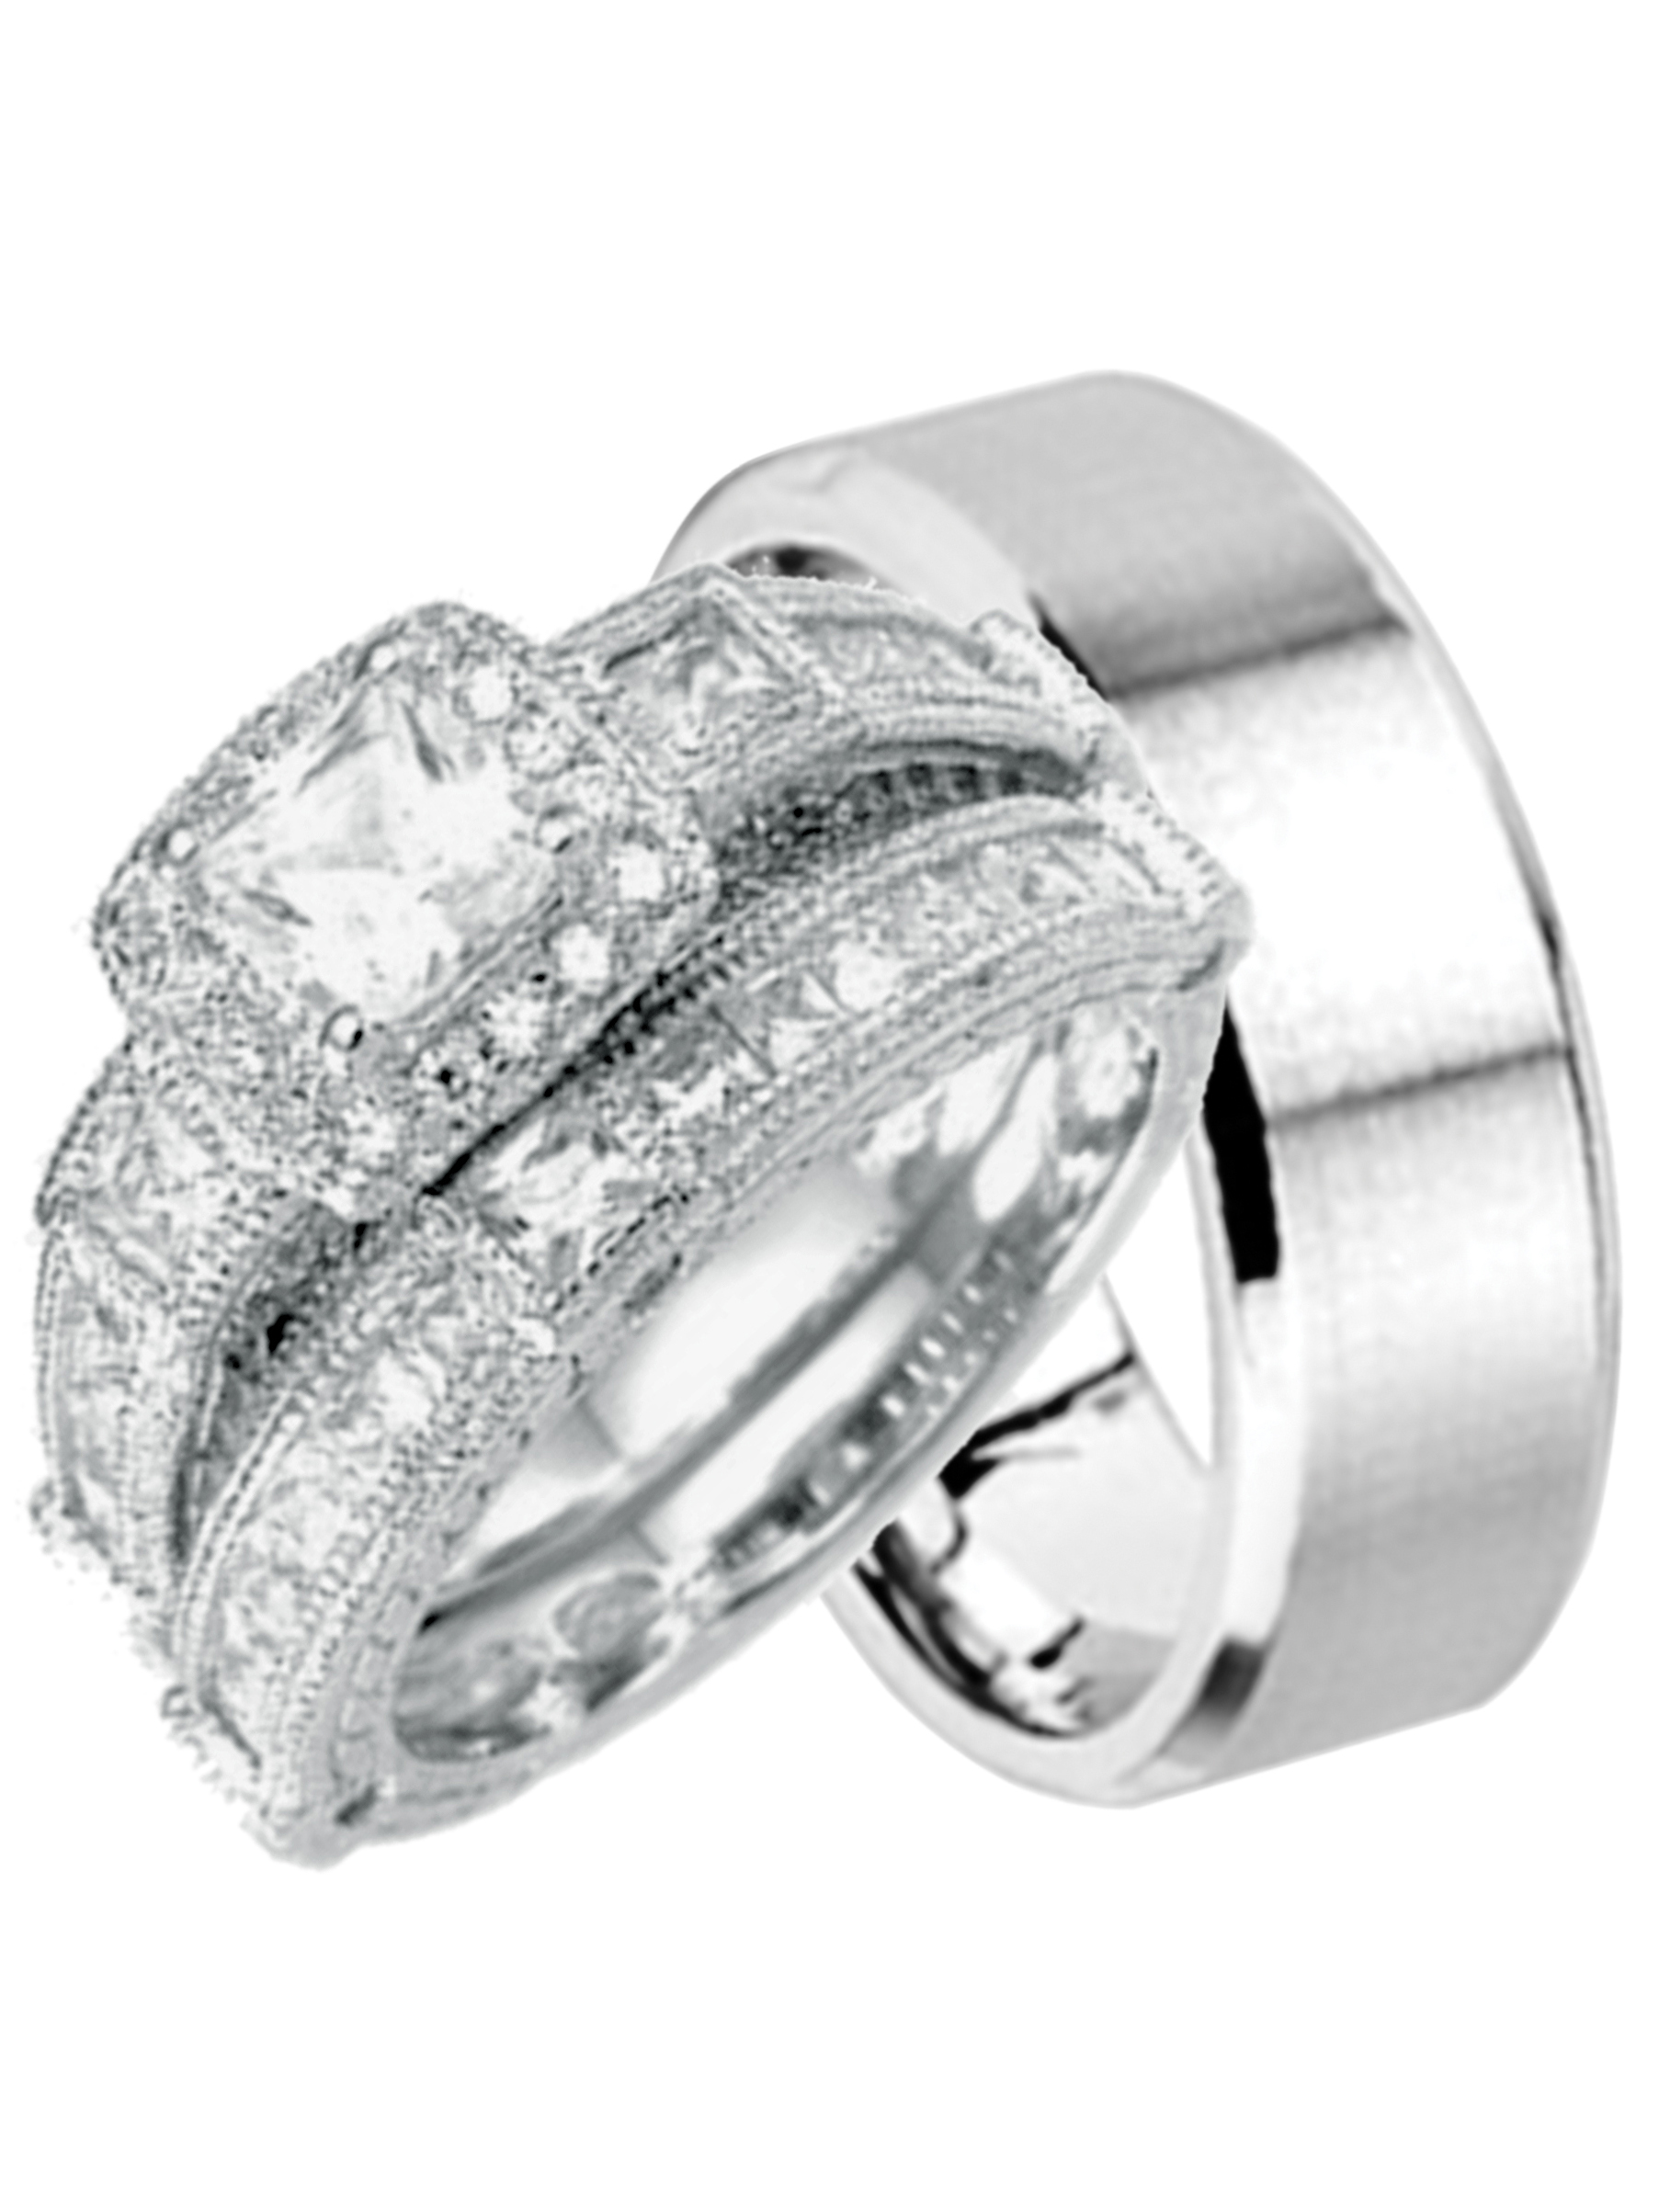 round ring bressay views detailed maevona wedding rings edinburgh engagement detail